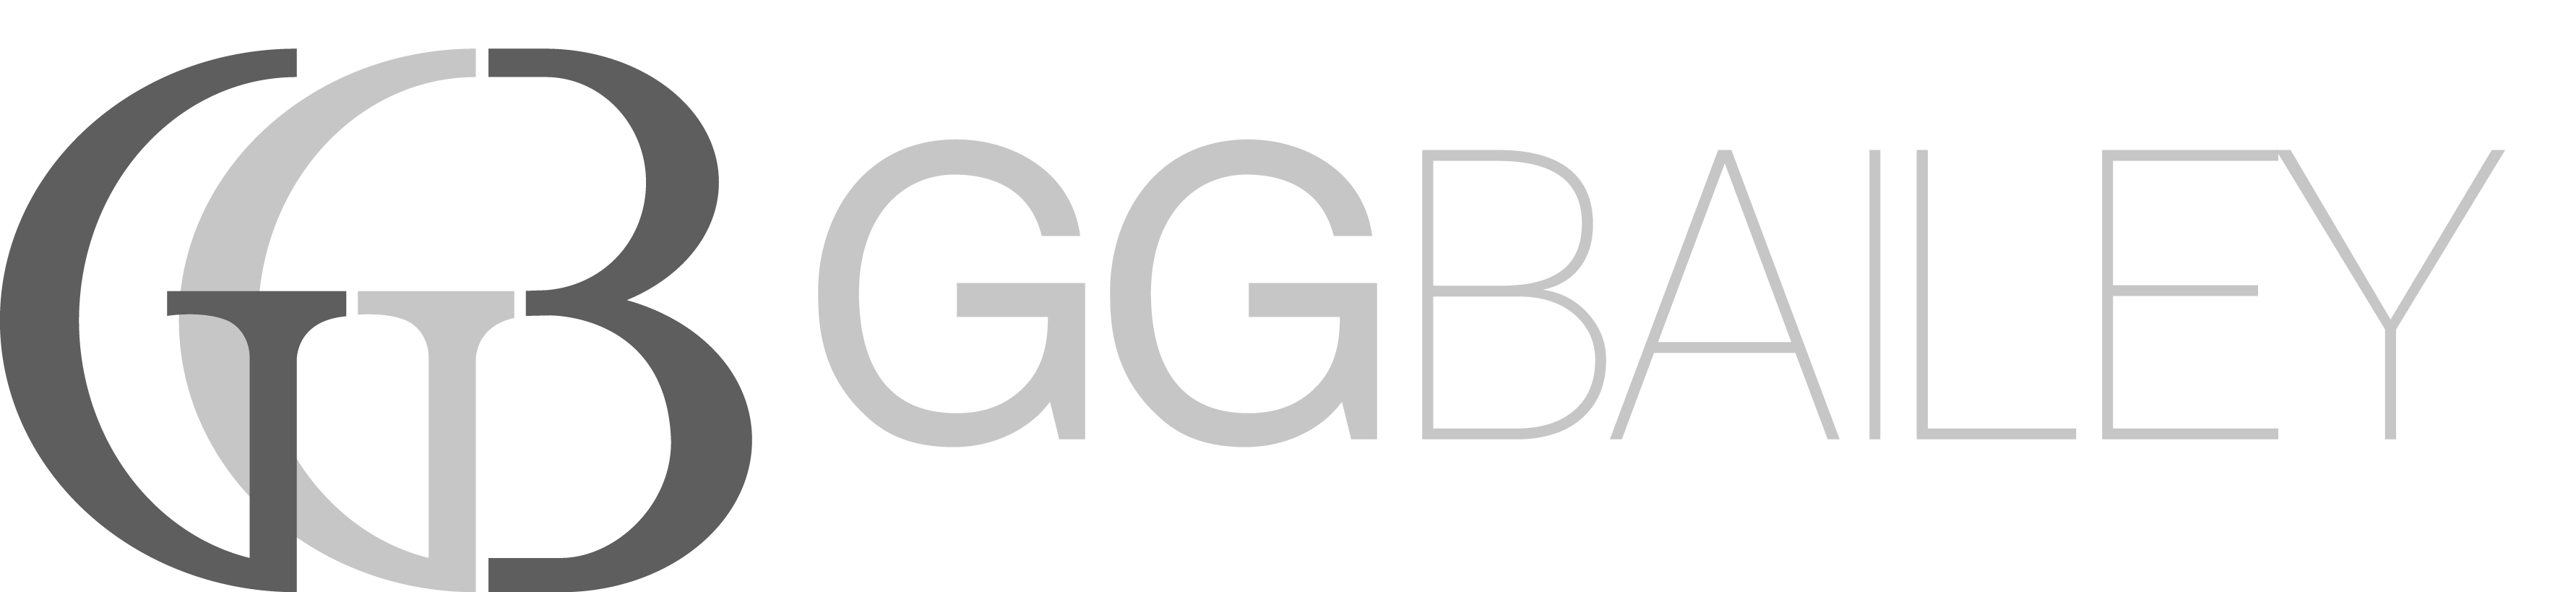 GGBAILEY Logo1.png